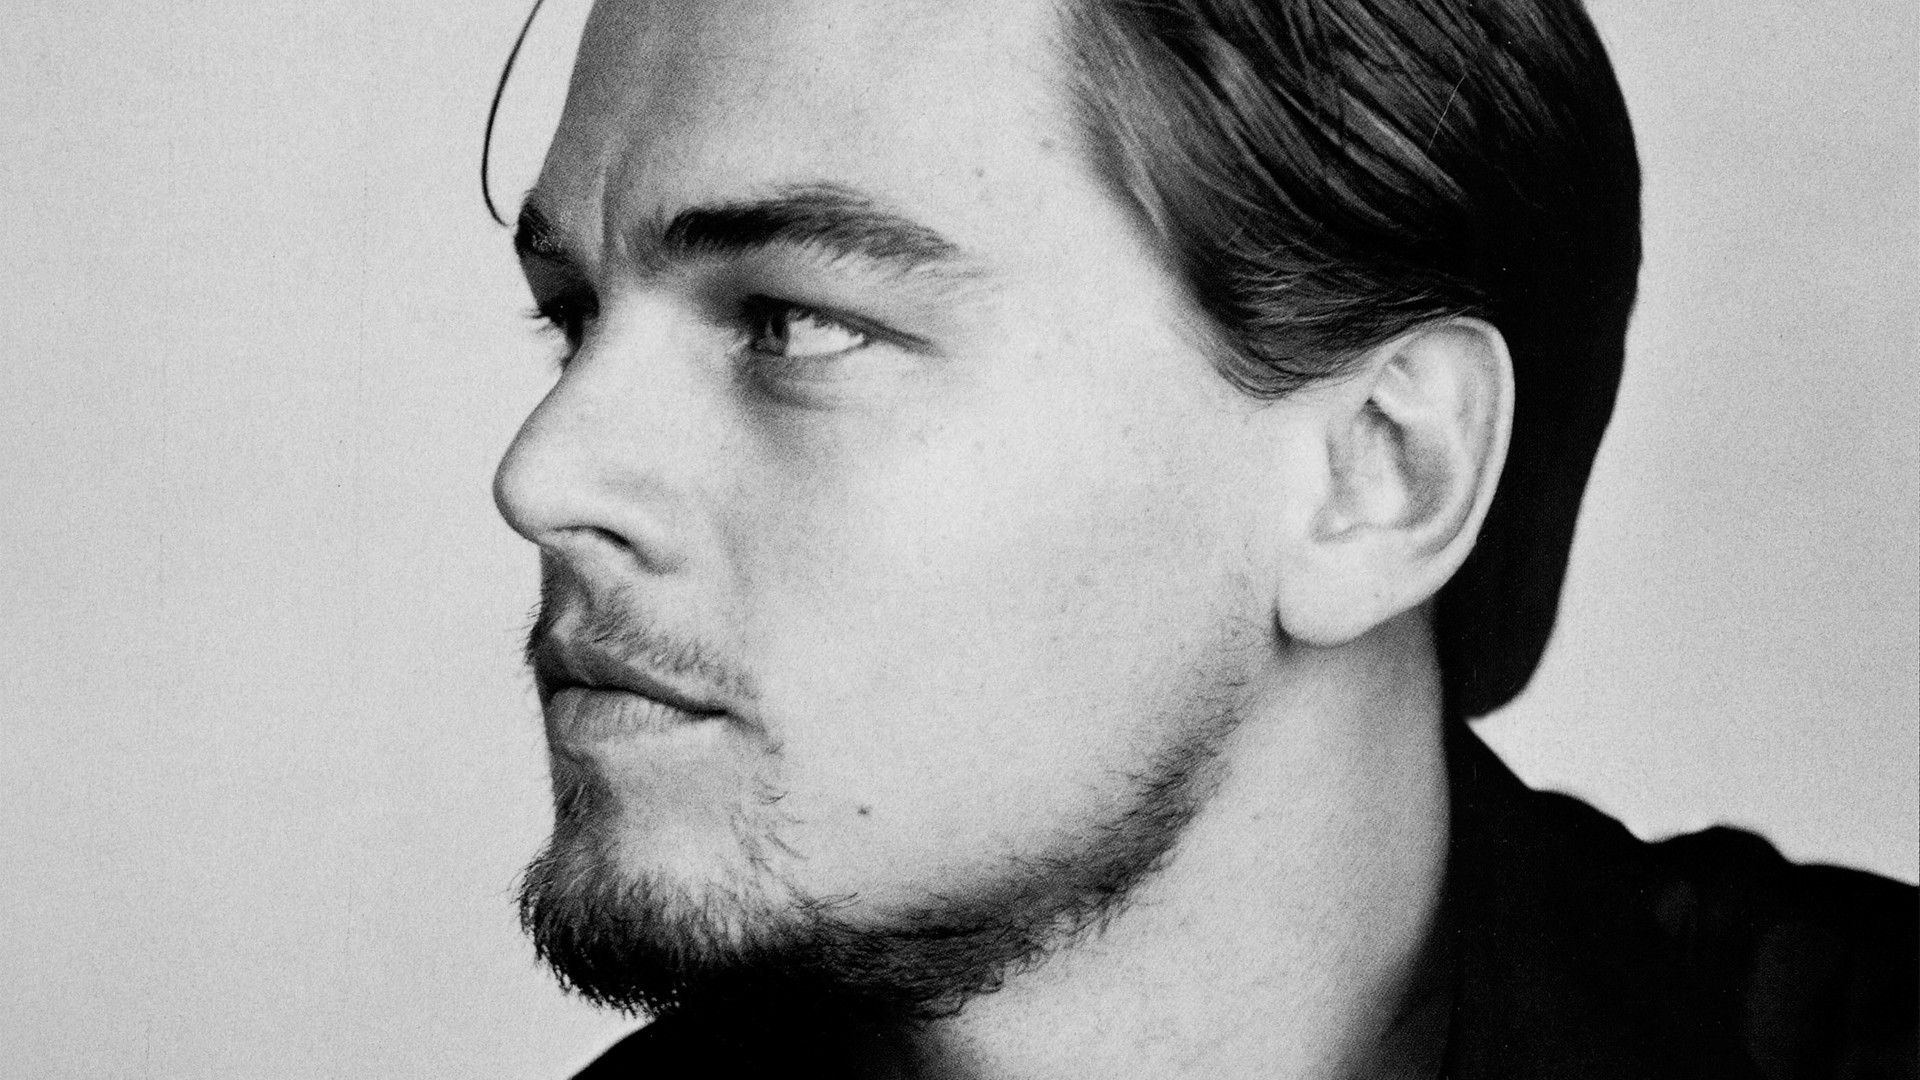 1920x1080 HD Leonardo Dicaprio Wallpapers 03 HD Leonardo Dicaprio Wallpapers 04